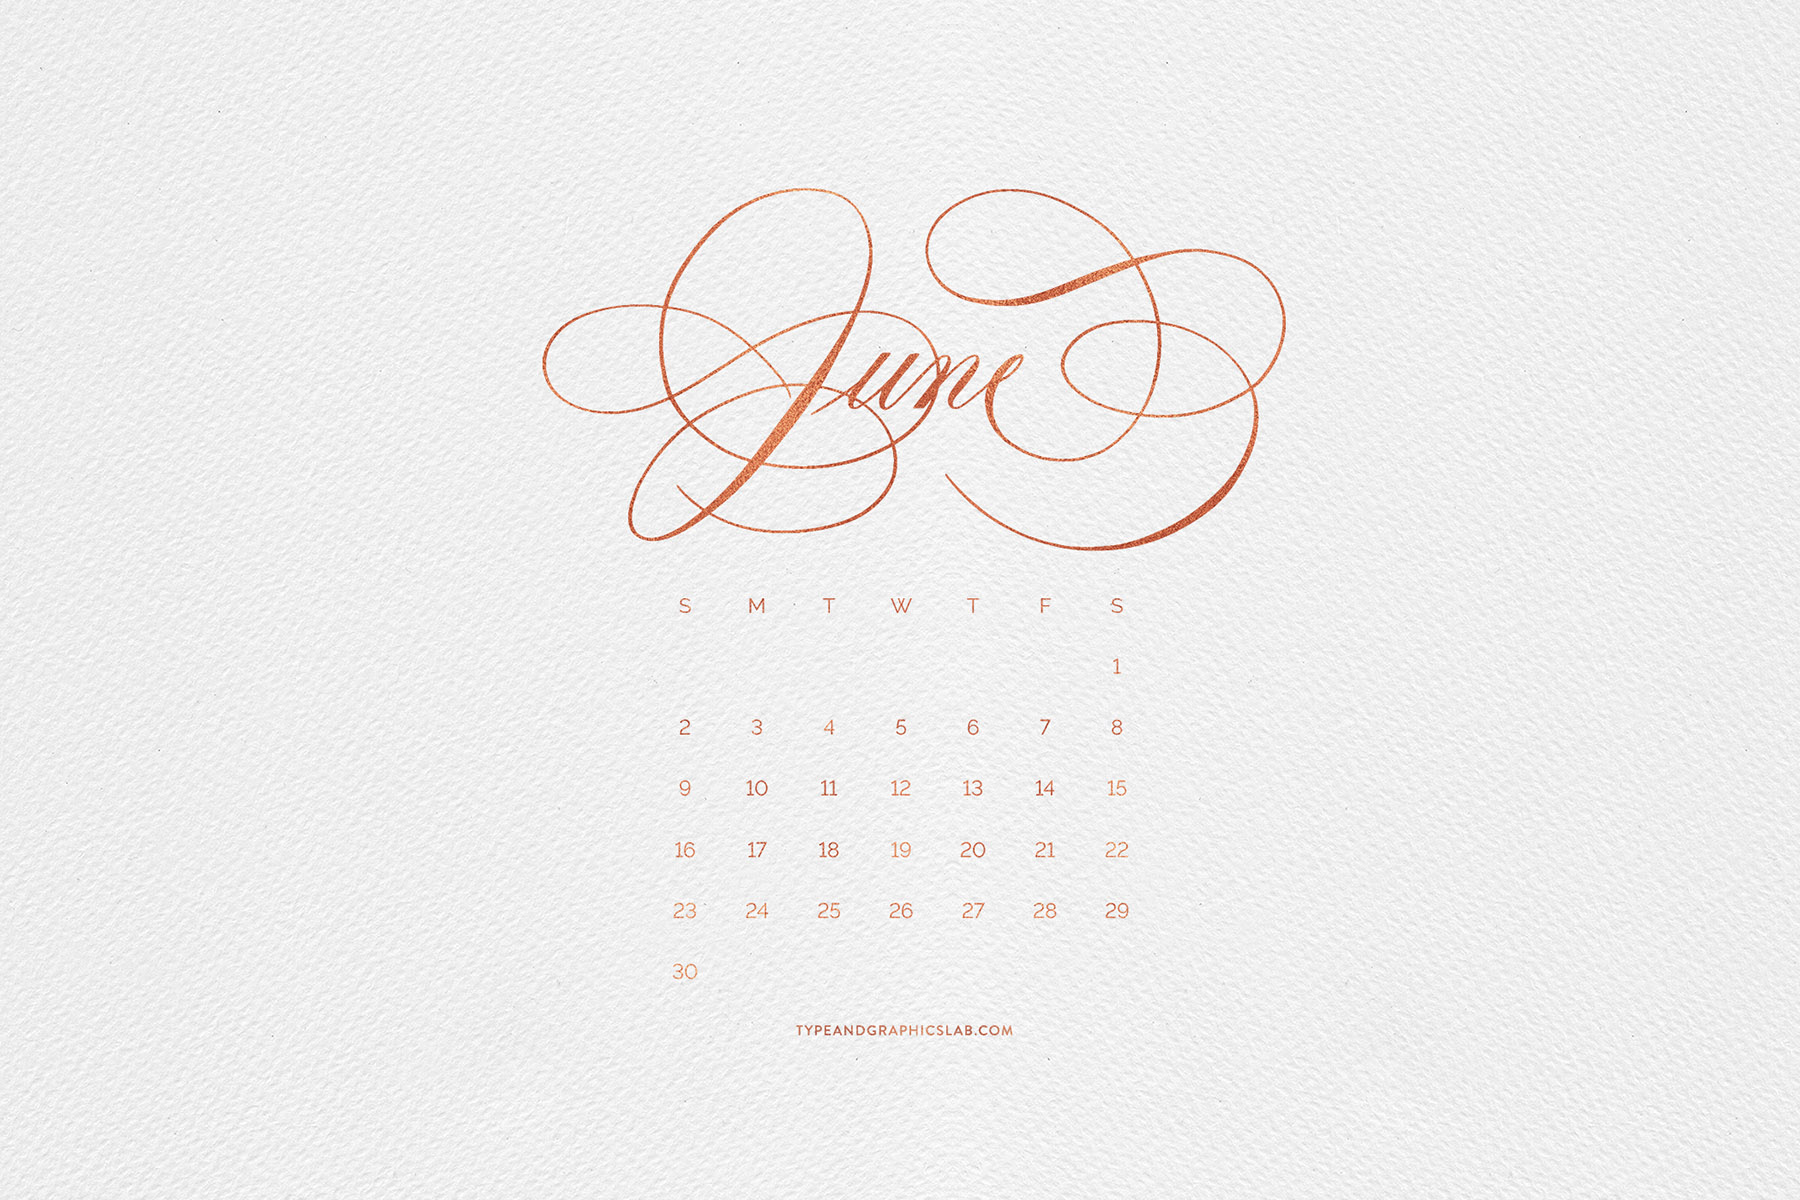 Download free desktop, mobile, and printable calendar for June 2019 | © typeandgraphicslab.com | For personal use only